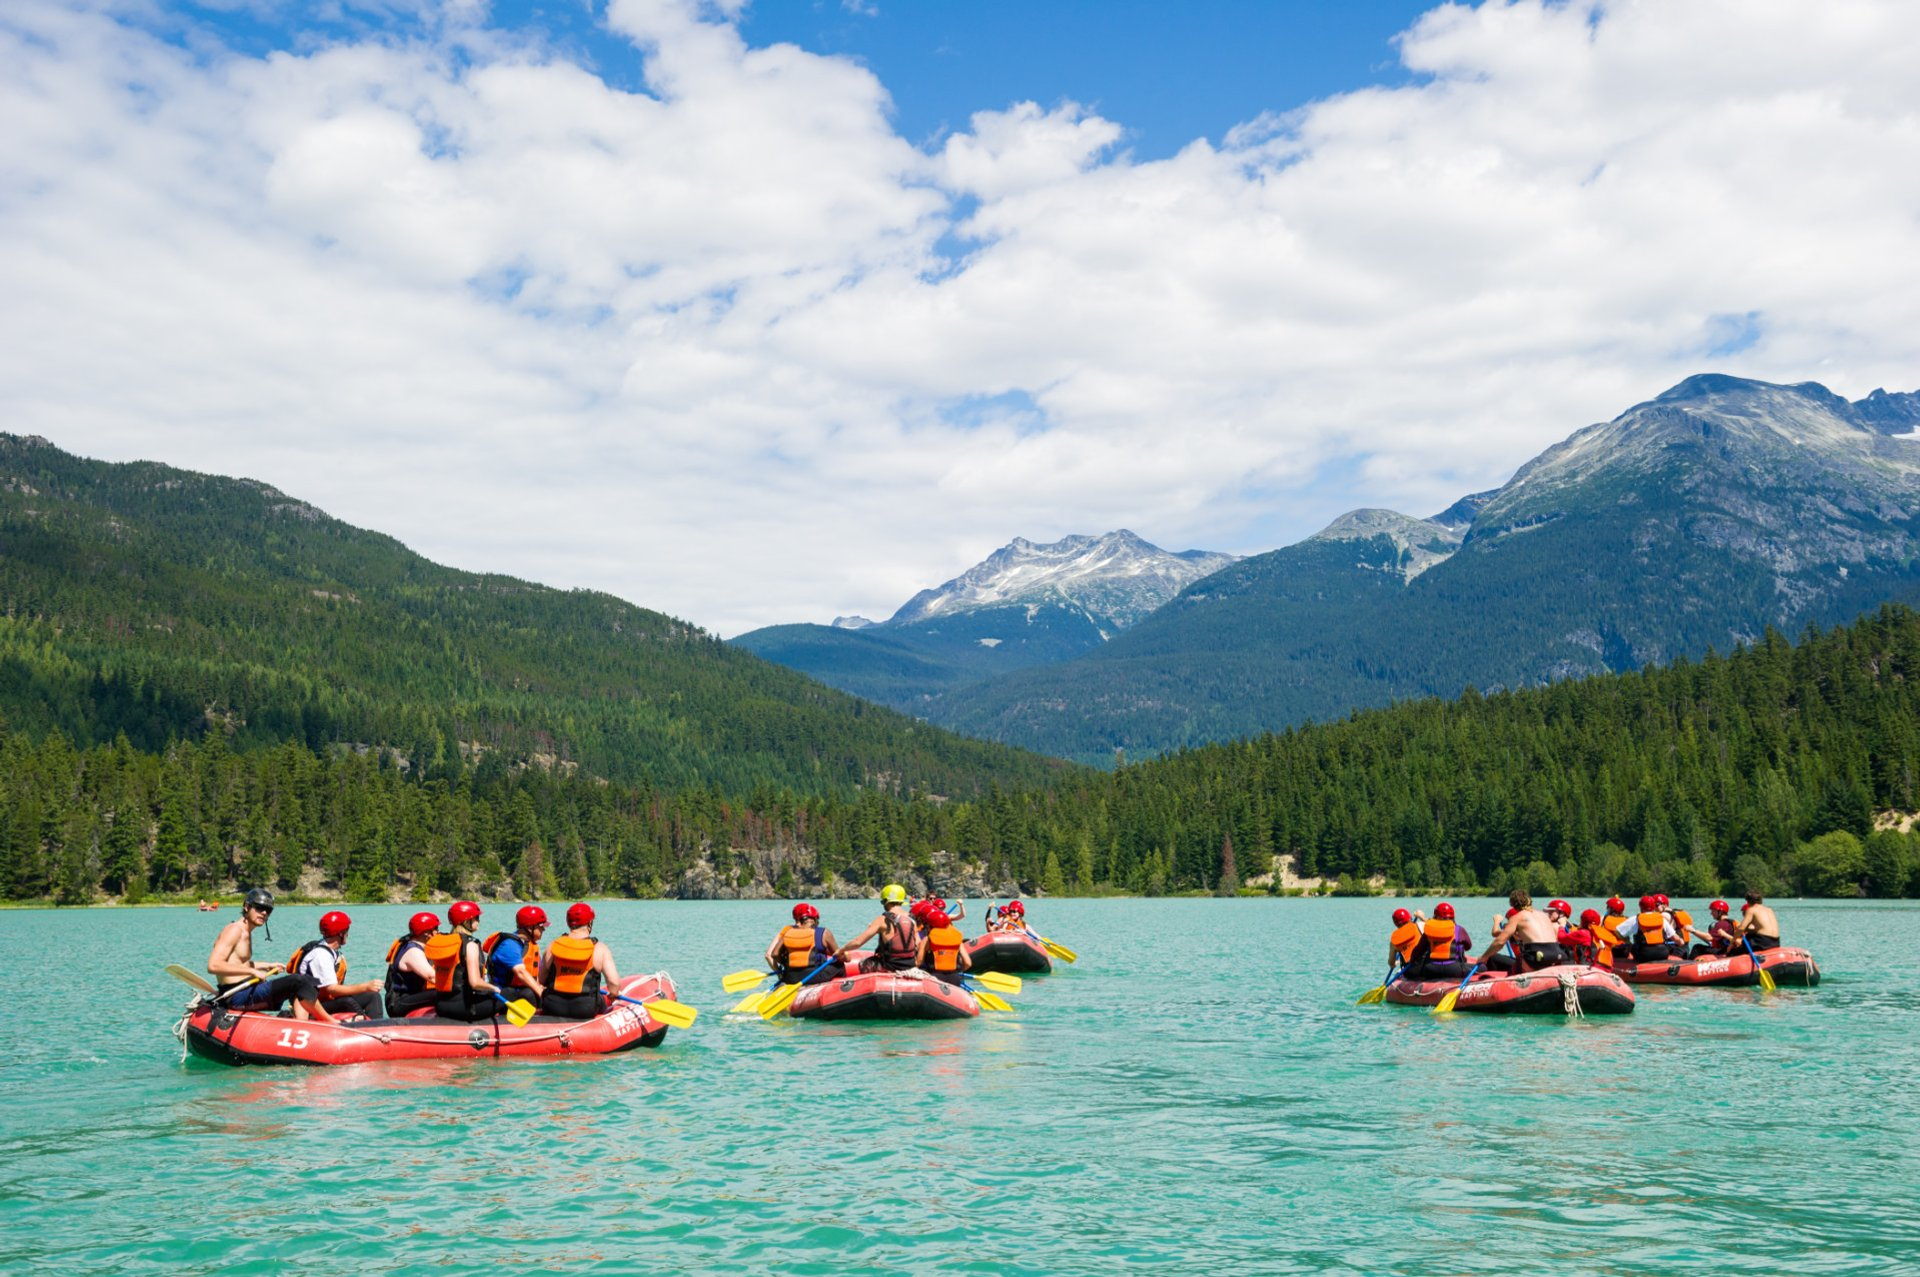 Rafting in Vancouver 2020 - Best Time